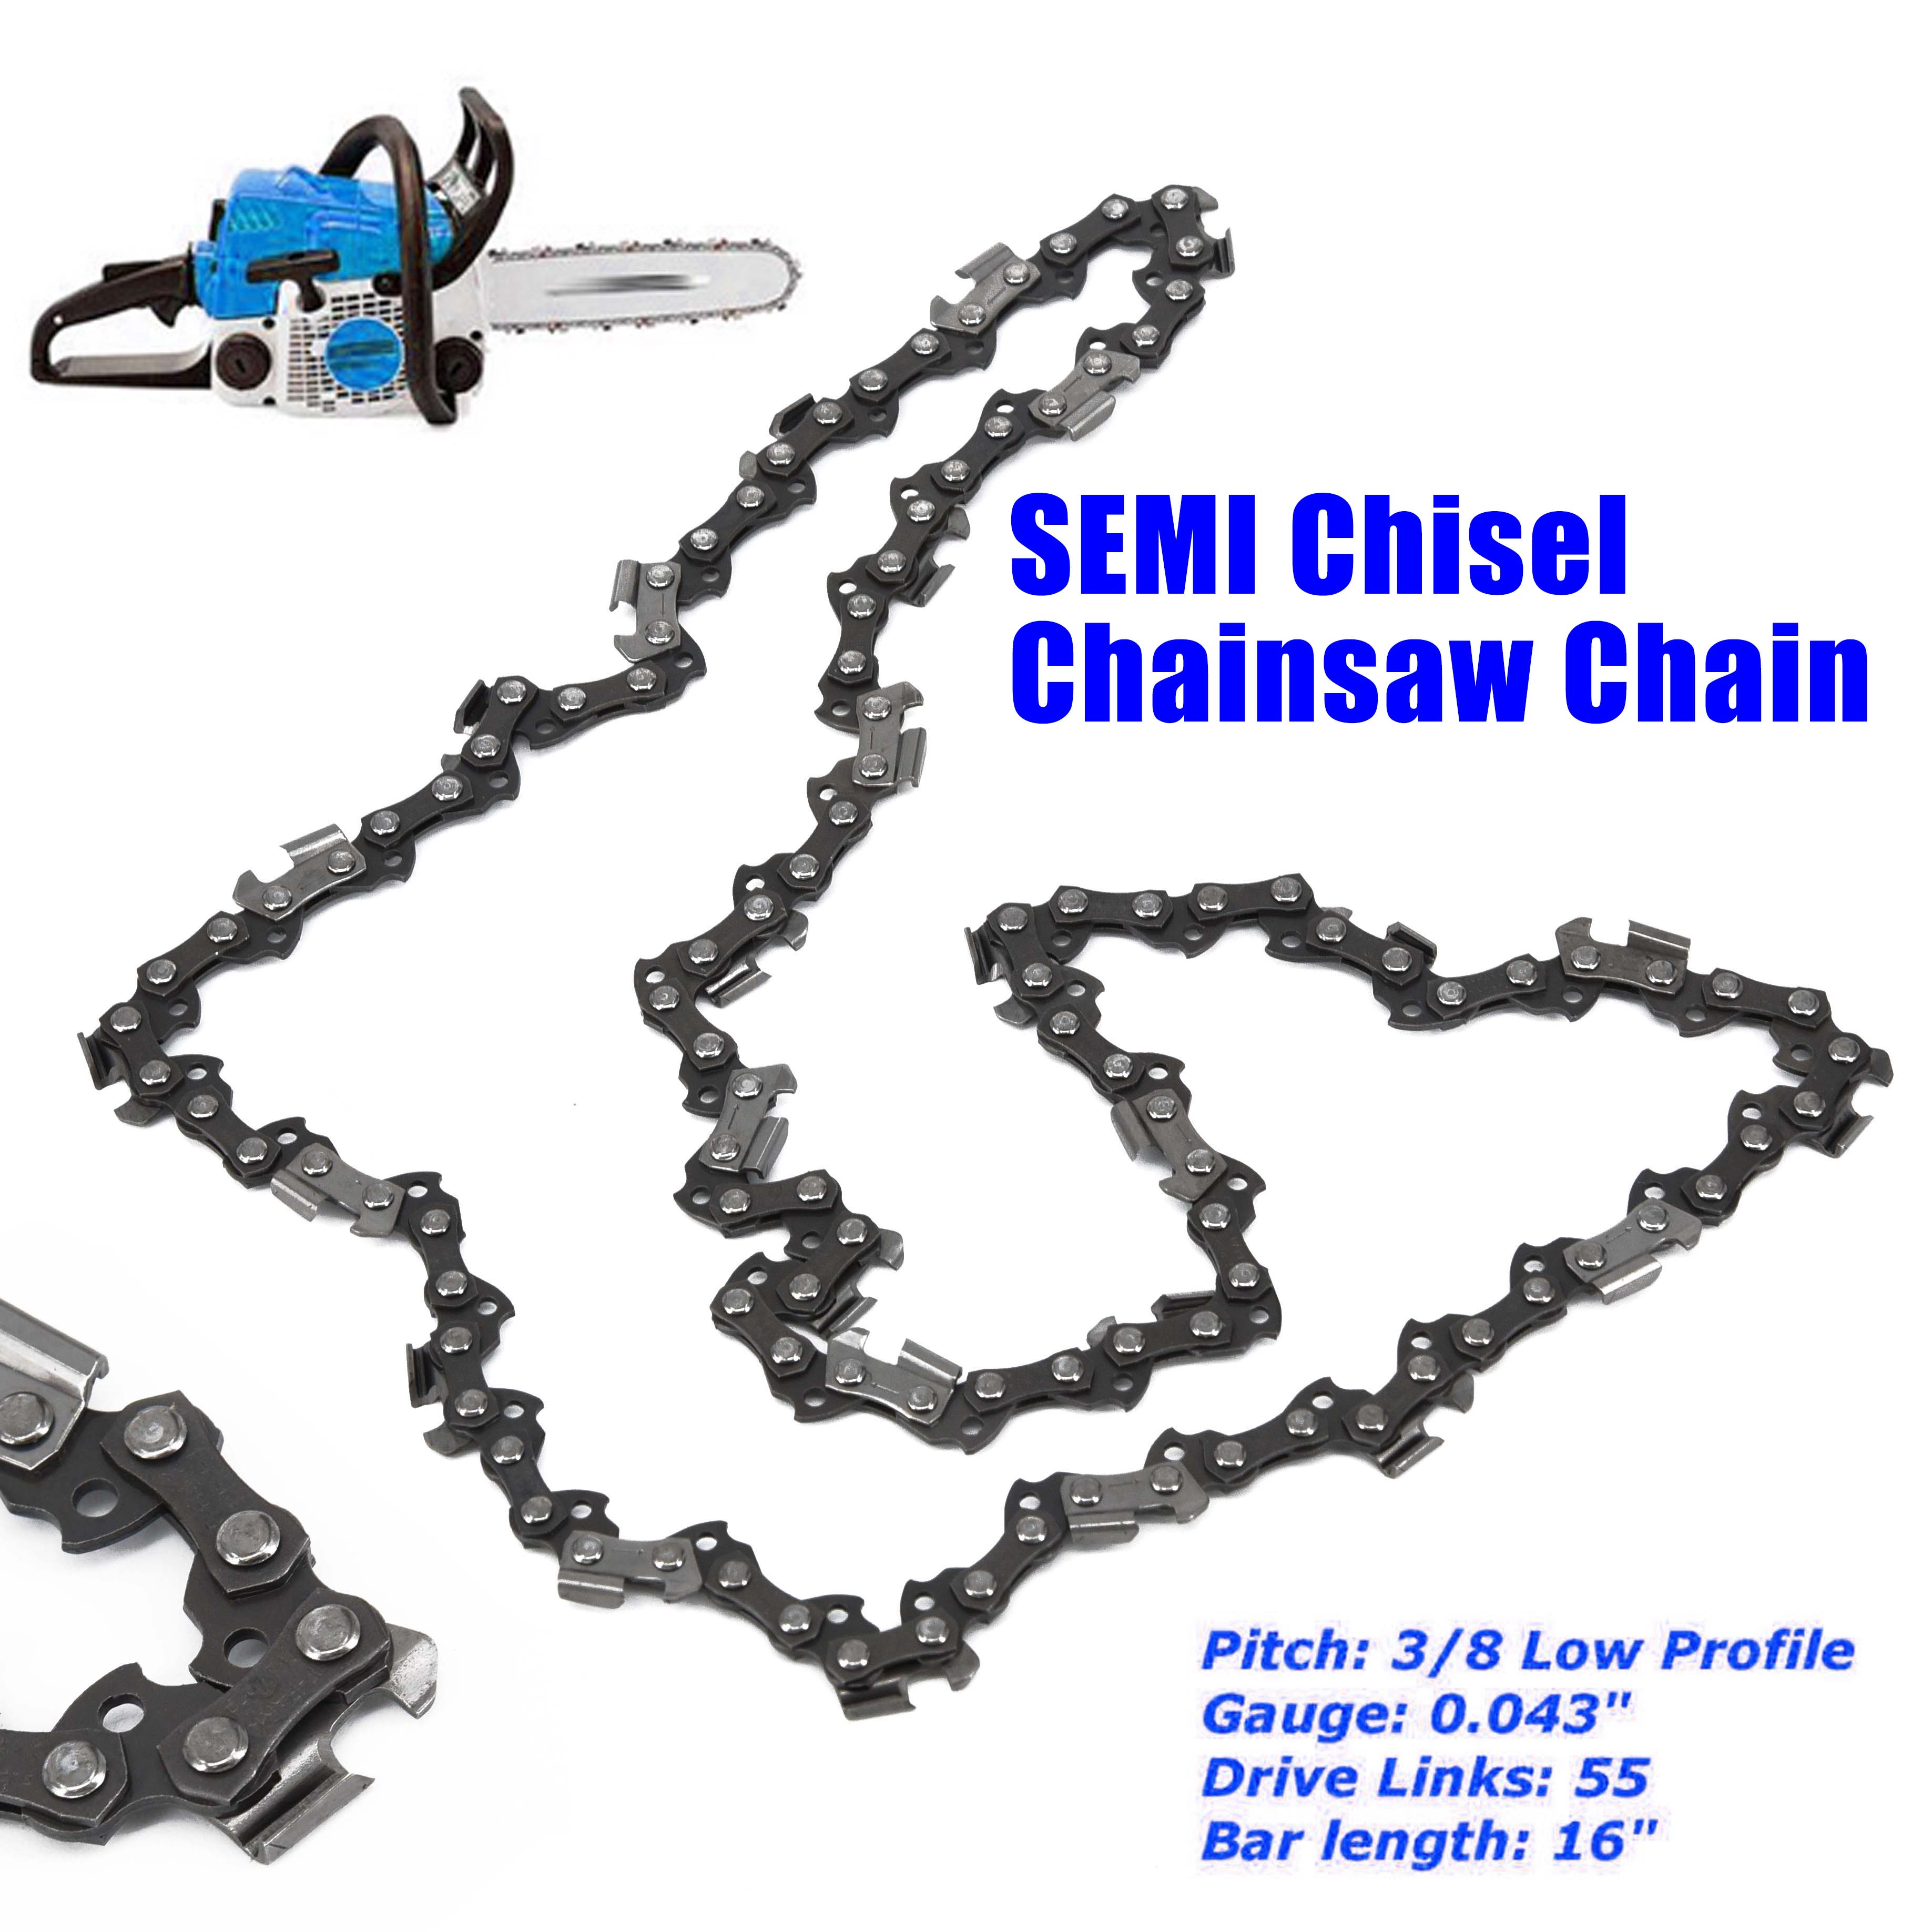 16/'/' Chain for Most Stihl 3//8 043 Gauge 55 Driver Chainsaw Bar SEMI Chisel Tool